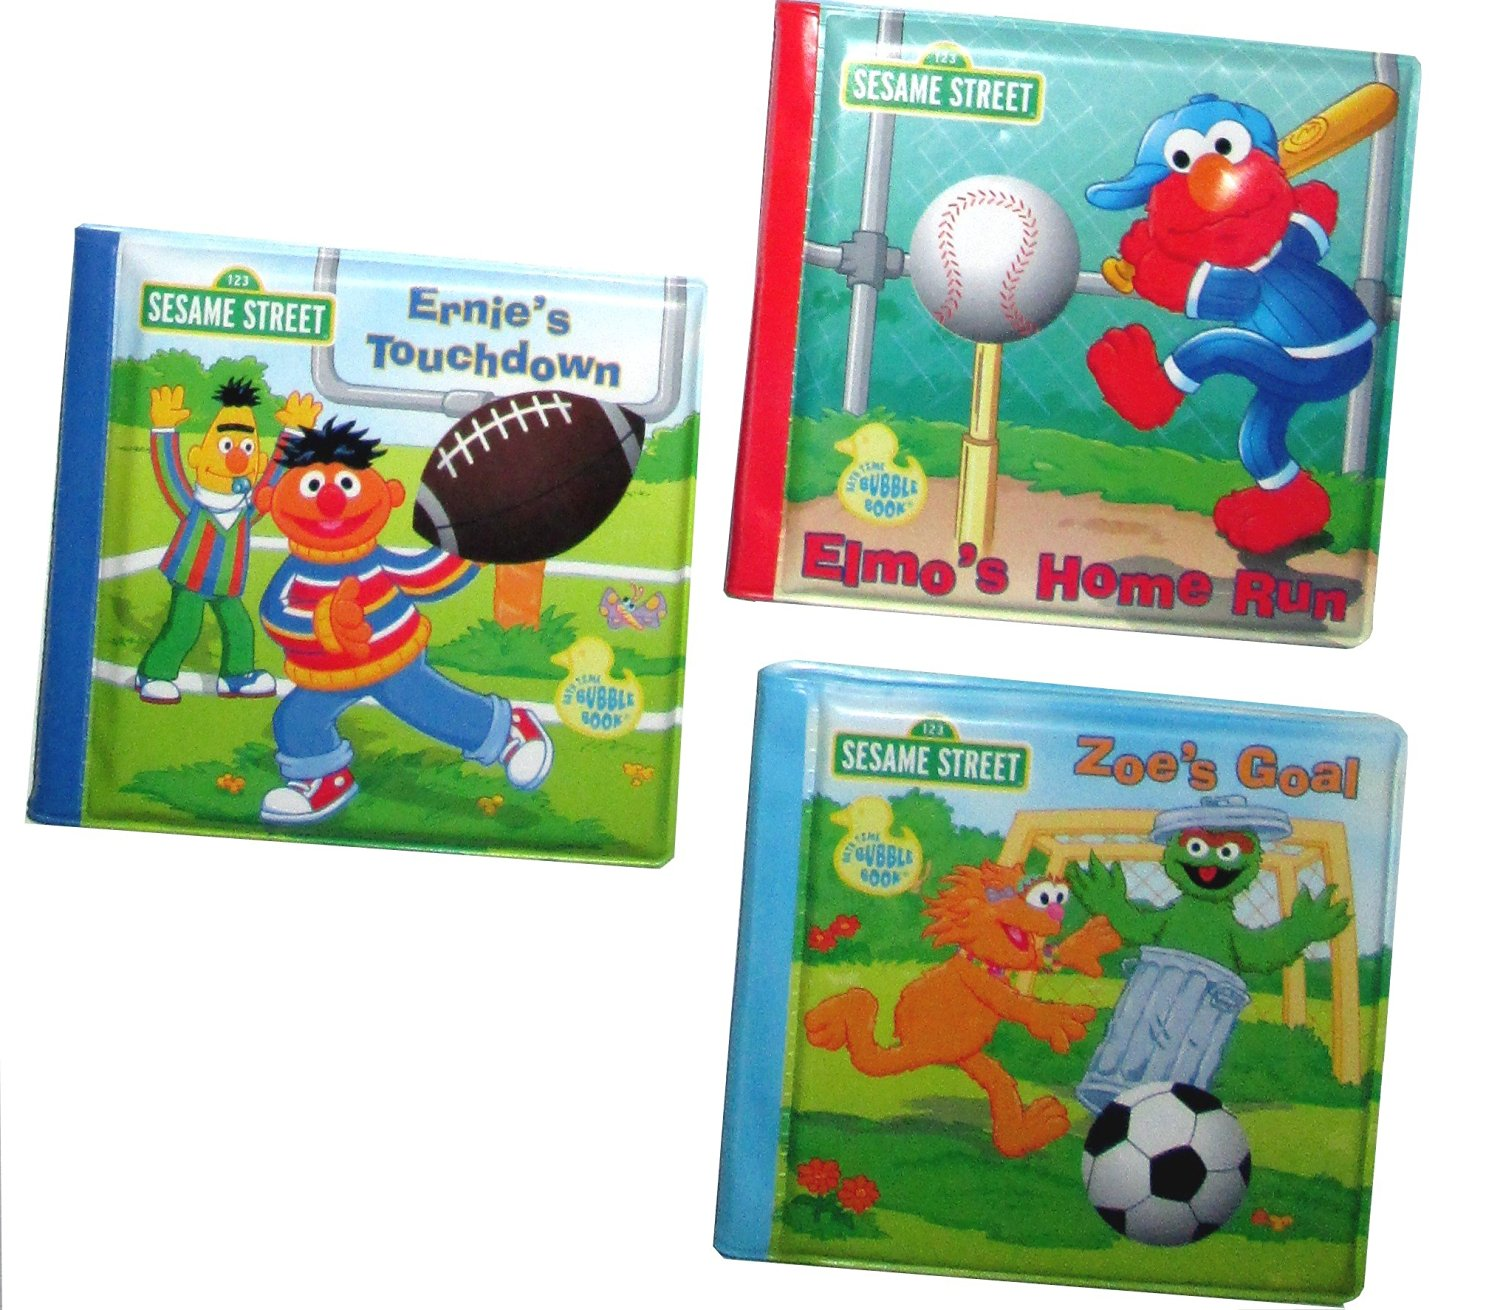 Get Quotations Sesame Street Bath Time Story Picture Toy Featuring Sporty Elmo Ernie Zoe